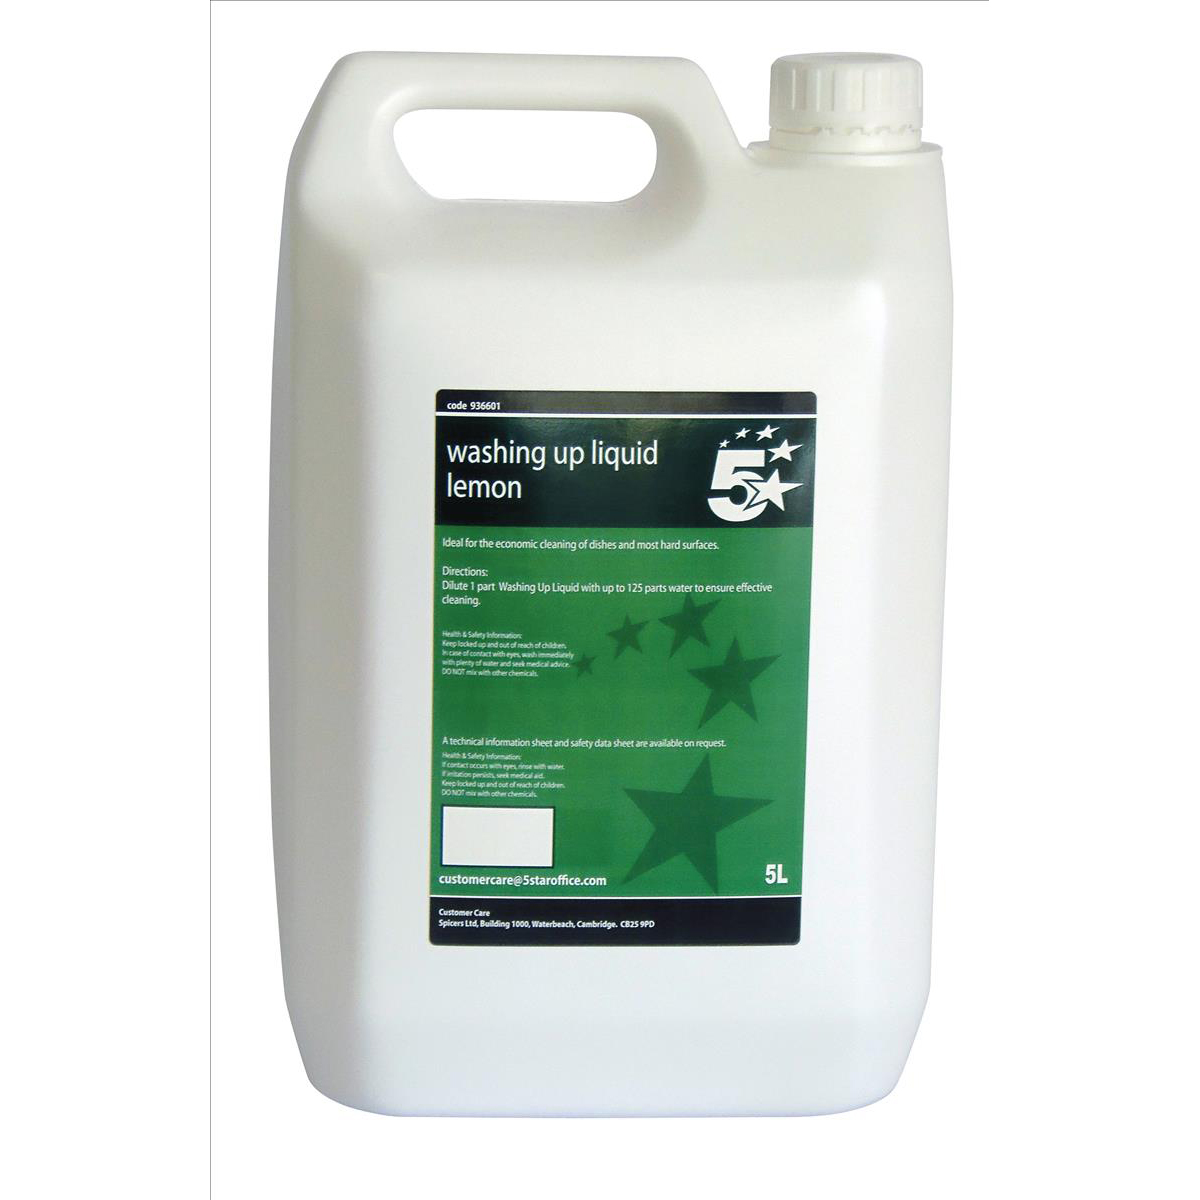 5 Star Facilities Washing-up Liquid Lemon 5 Litres